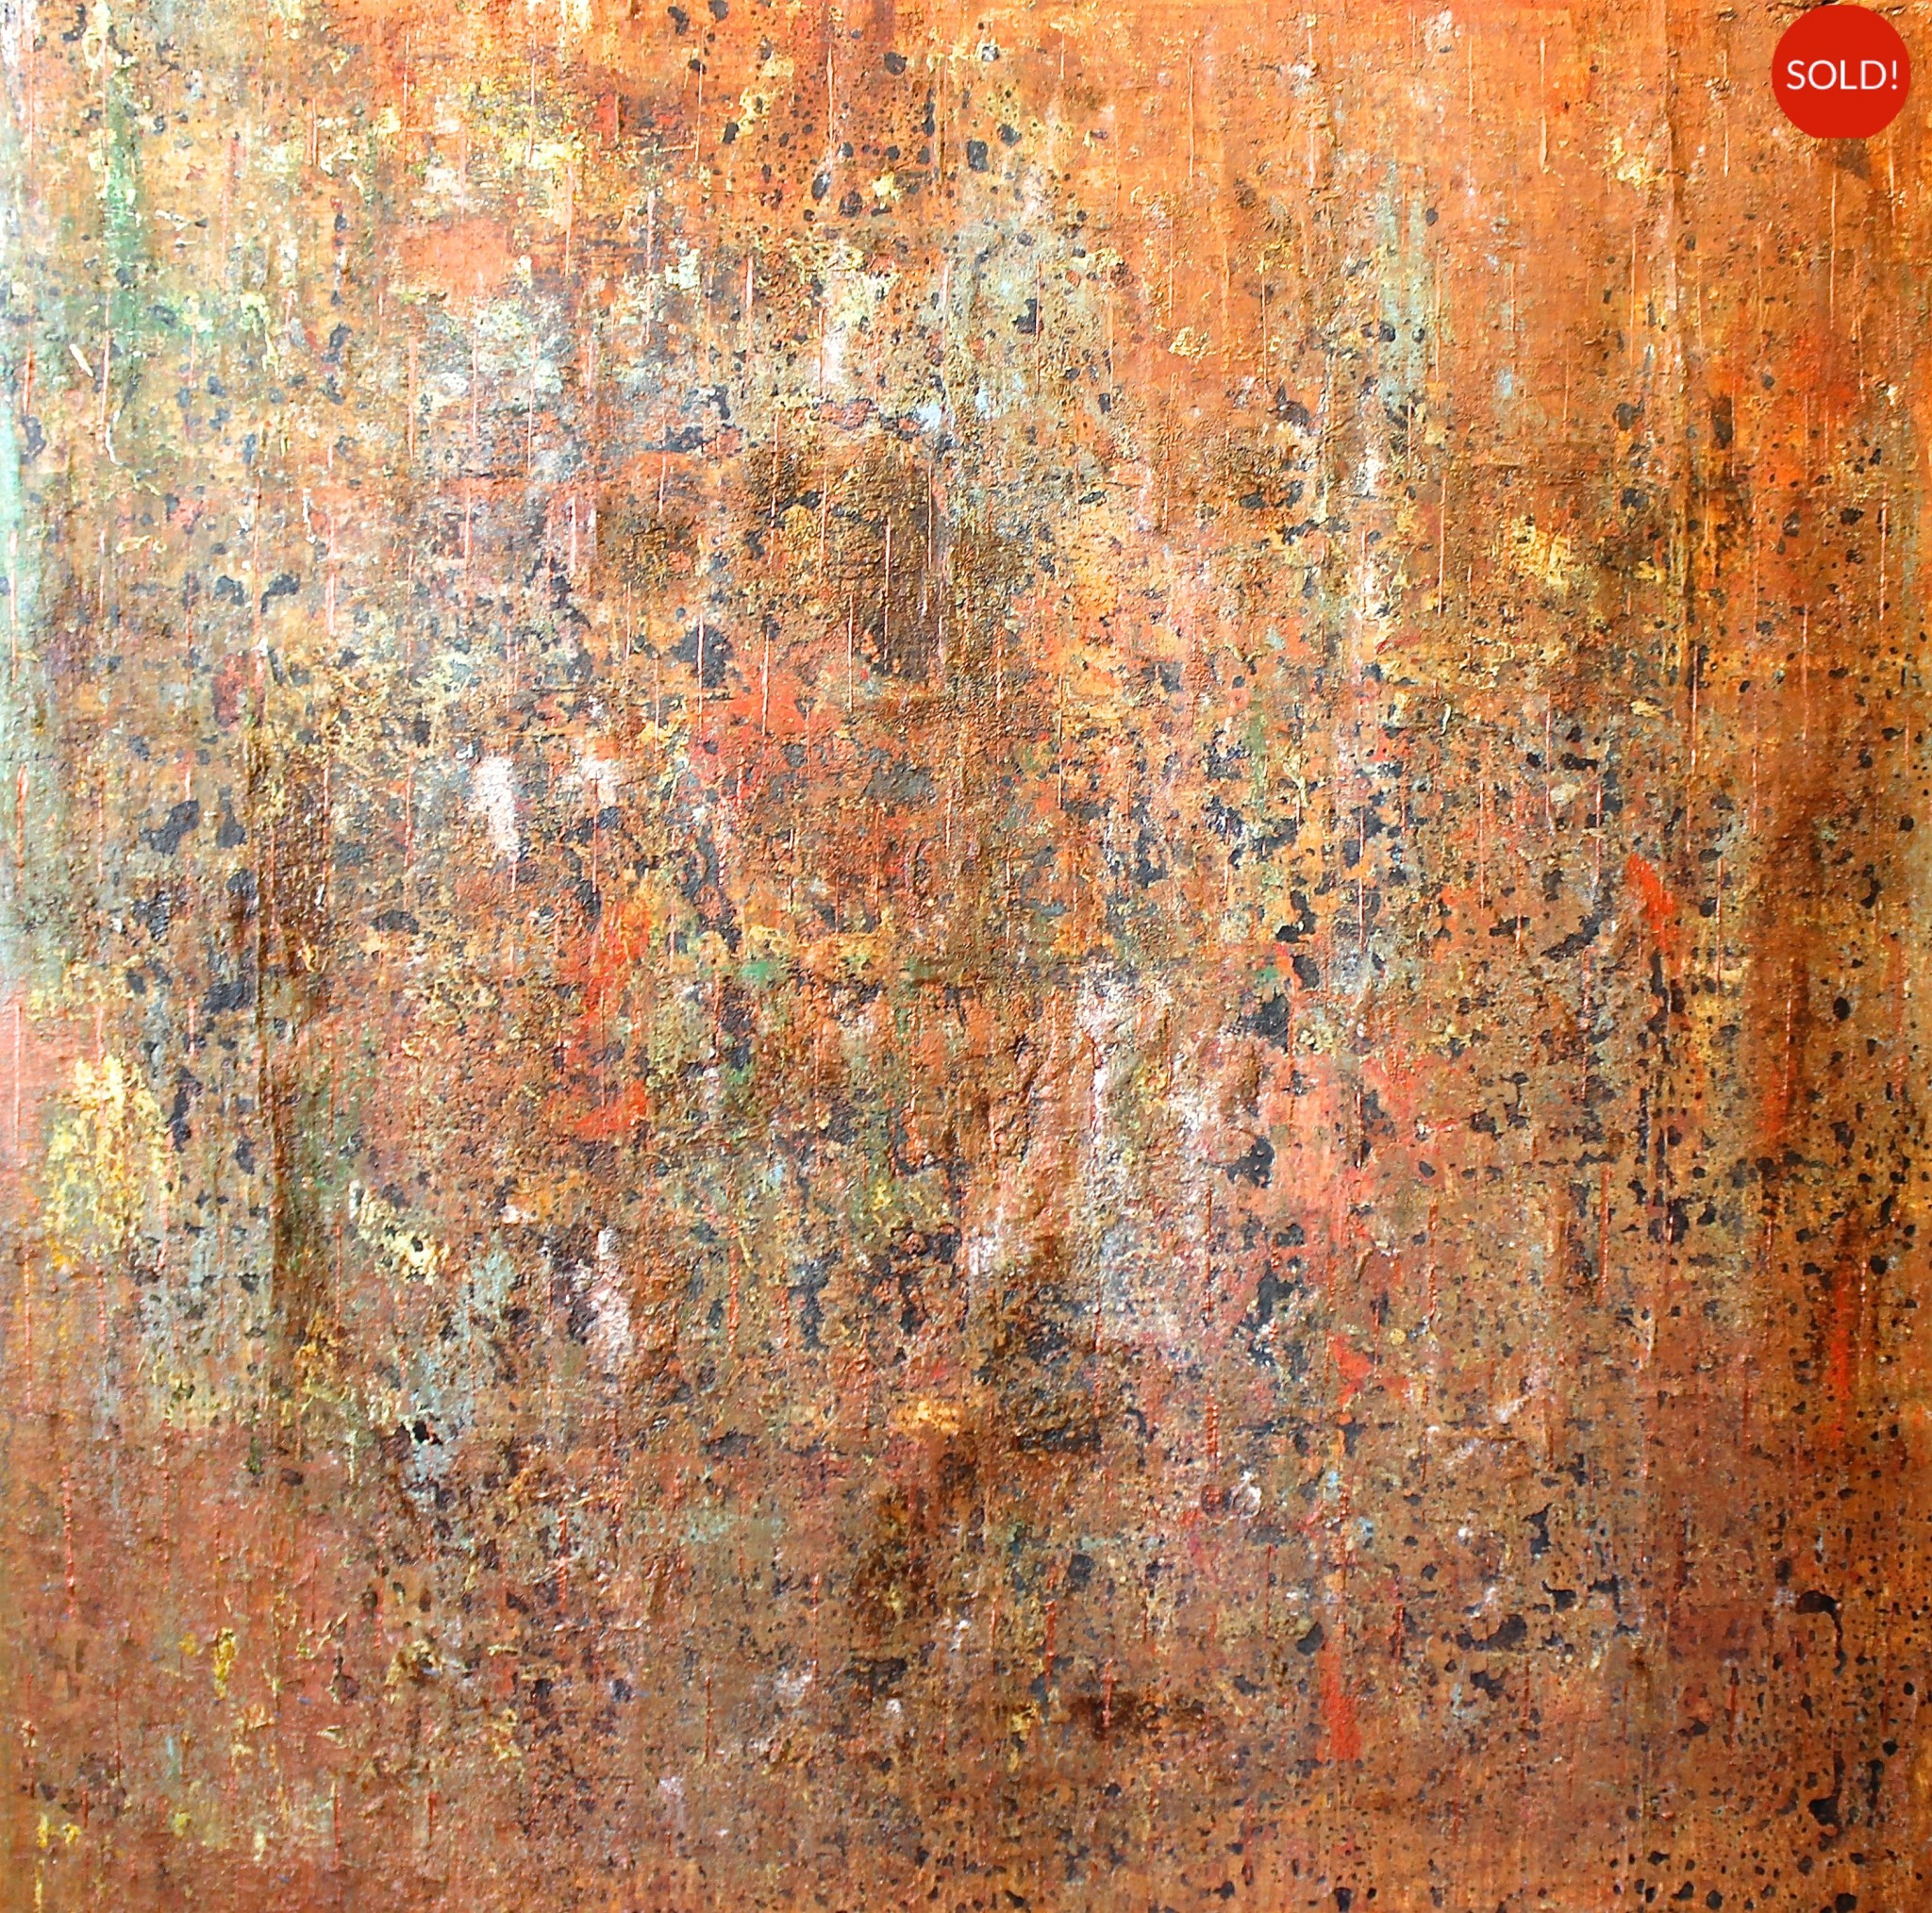 Copper Field_1_SOLD